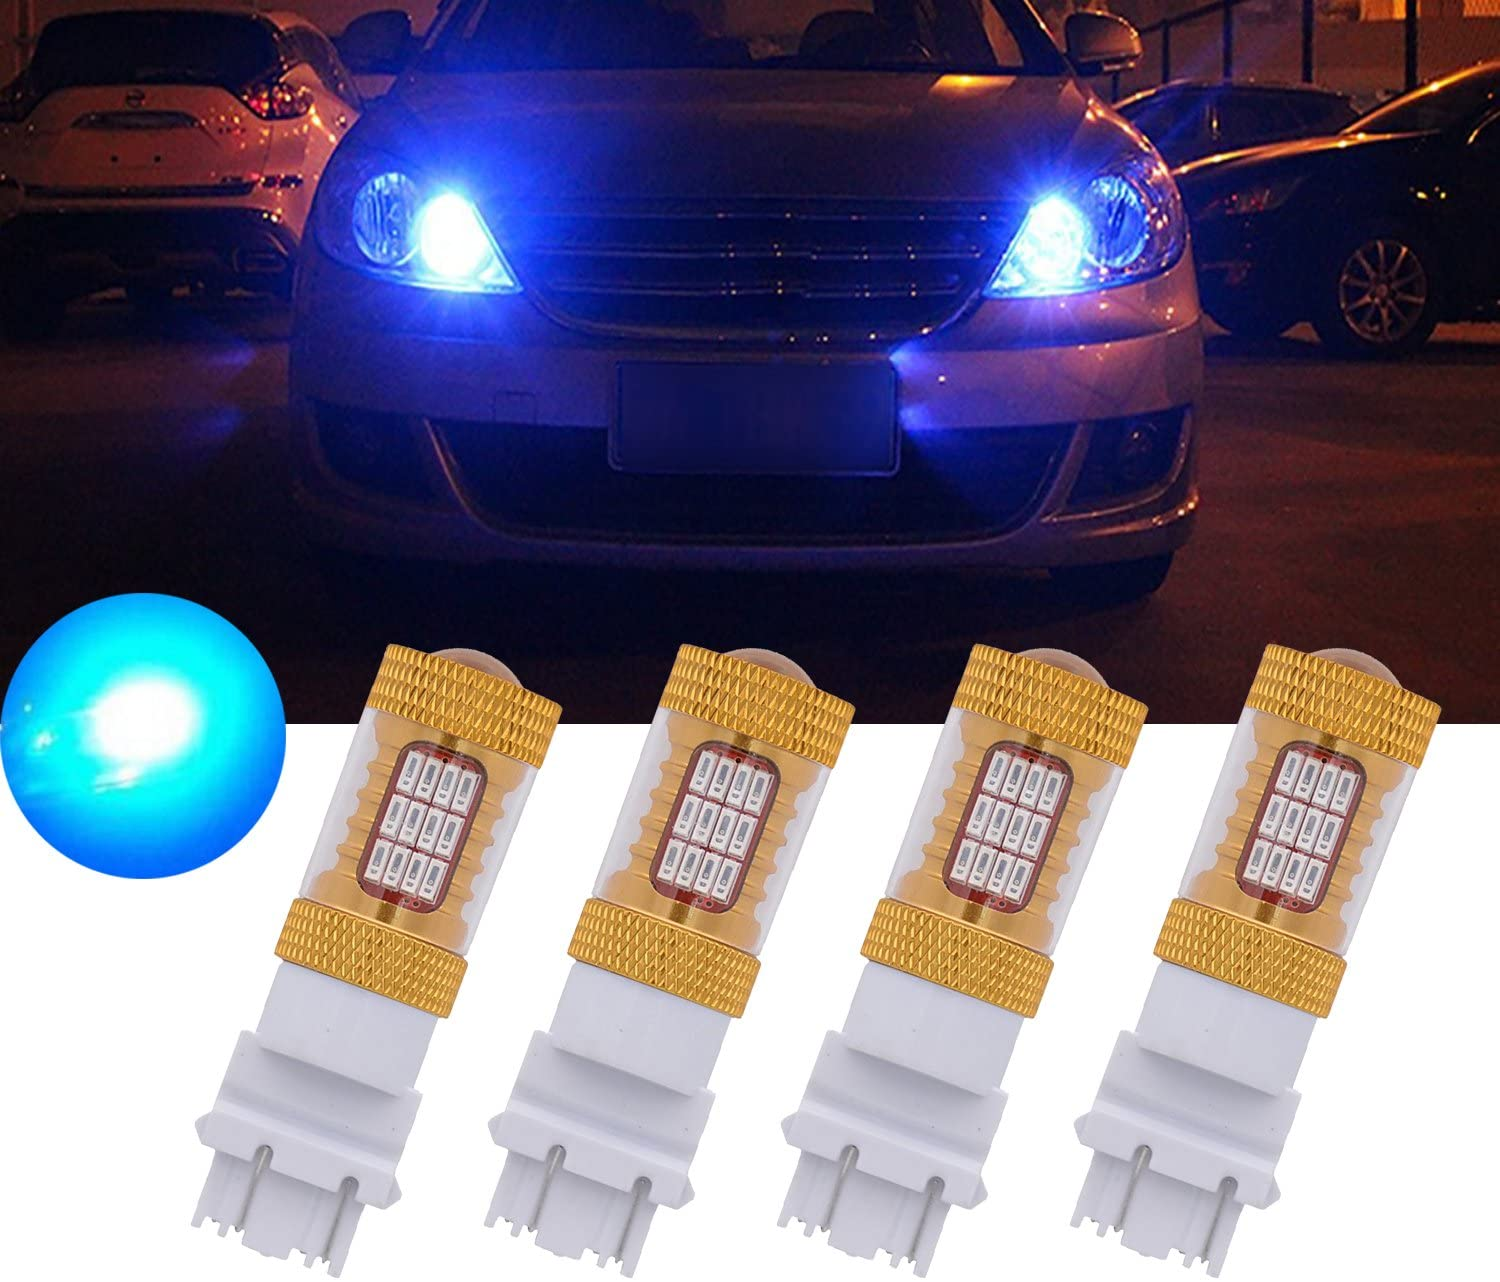 TUINCYN 3157 3156 Car LED Replacement Brake Light Bulbs Blue 3457 3047 3057 3057A 3155 4014 54SMD Auto Tail Backup Stop Lights Turn Signal Brake LED Light with Lens DC 12V (Pack of 4)